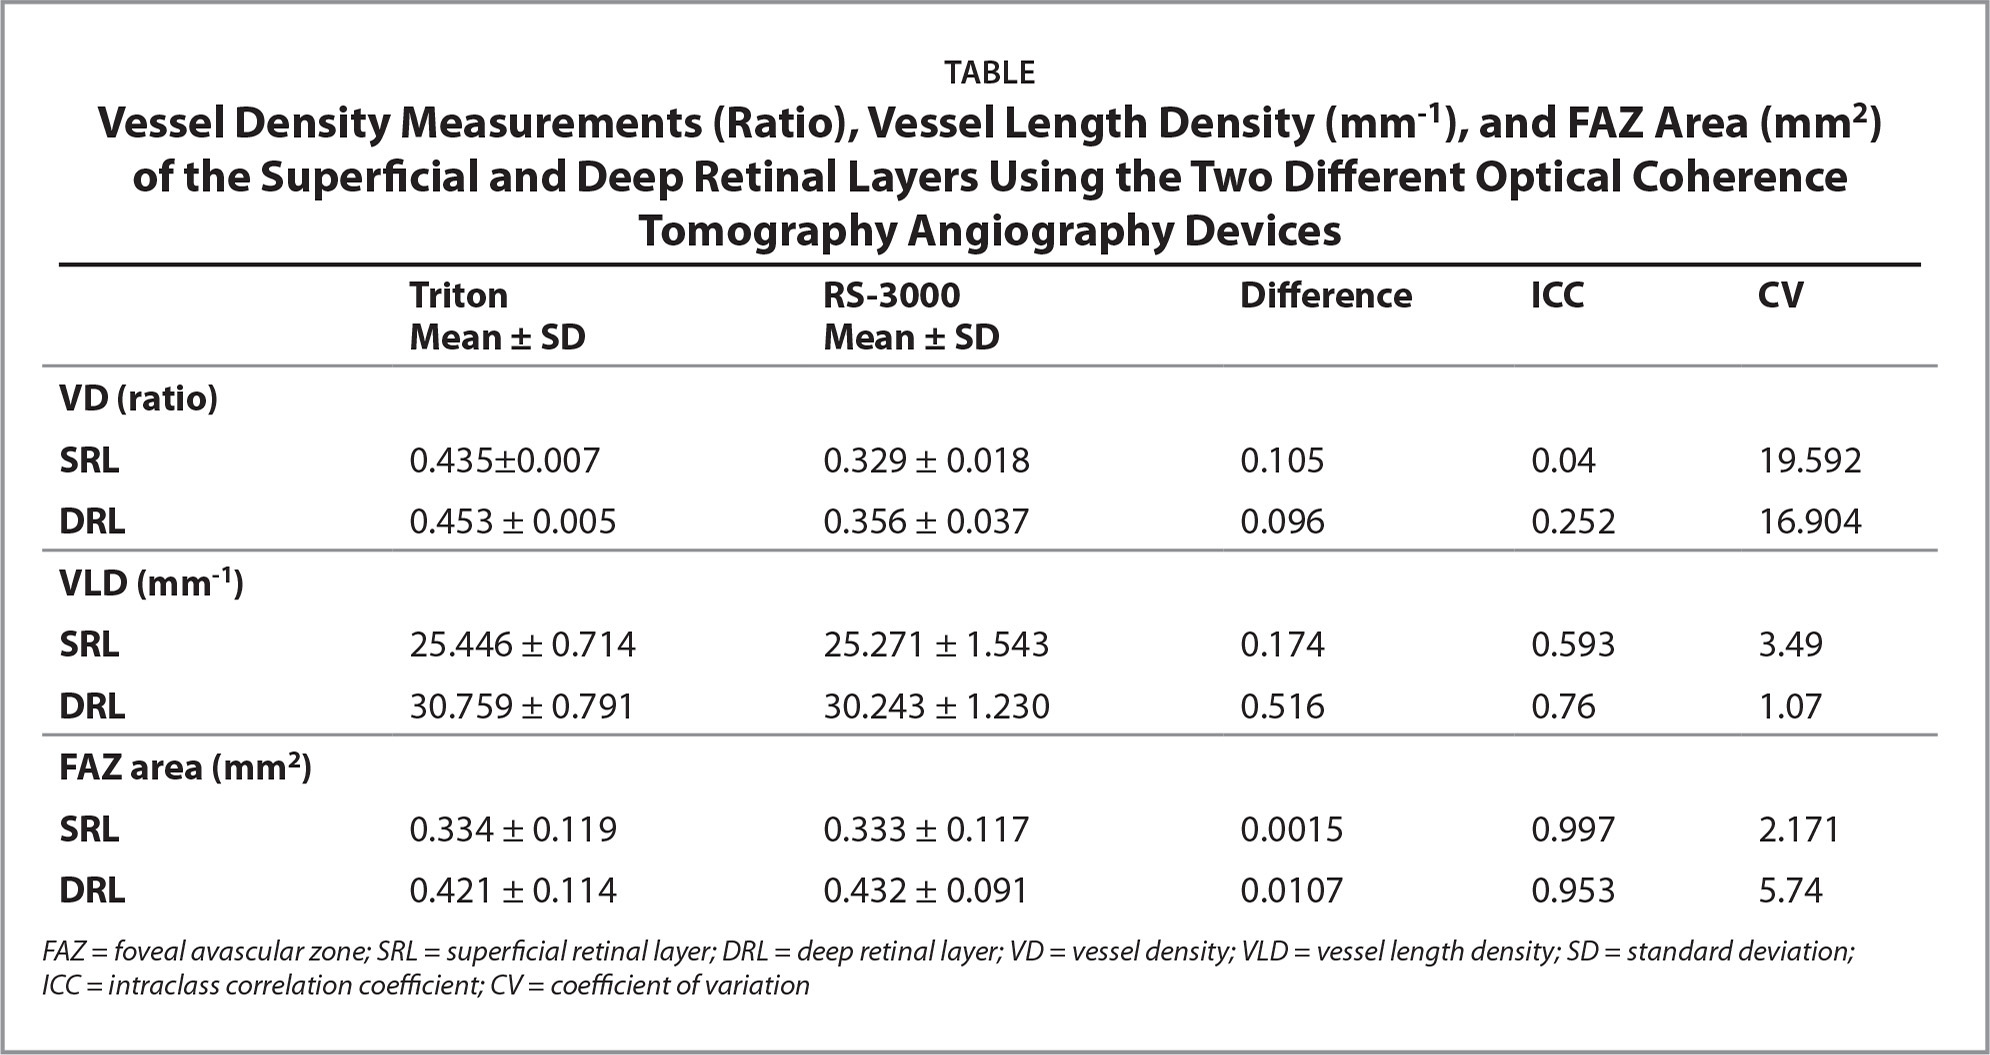 Vessel Density Measurements (Ratio), Vessel Length Density (mm−1), and FAZ Area (mm2) of the Superficial and Deep Retinal Layers Using the Two Different Optical Coherence Tomography Angiography Devices